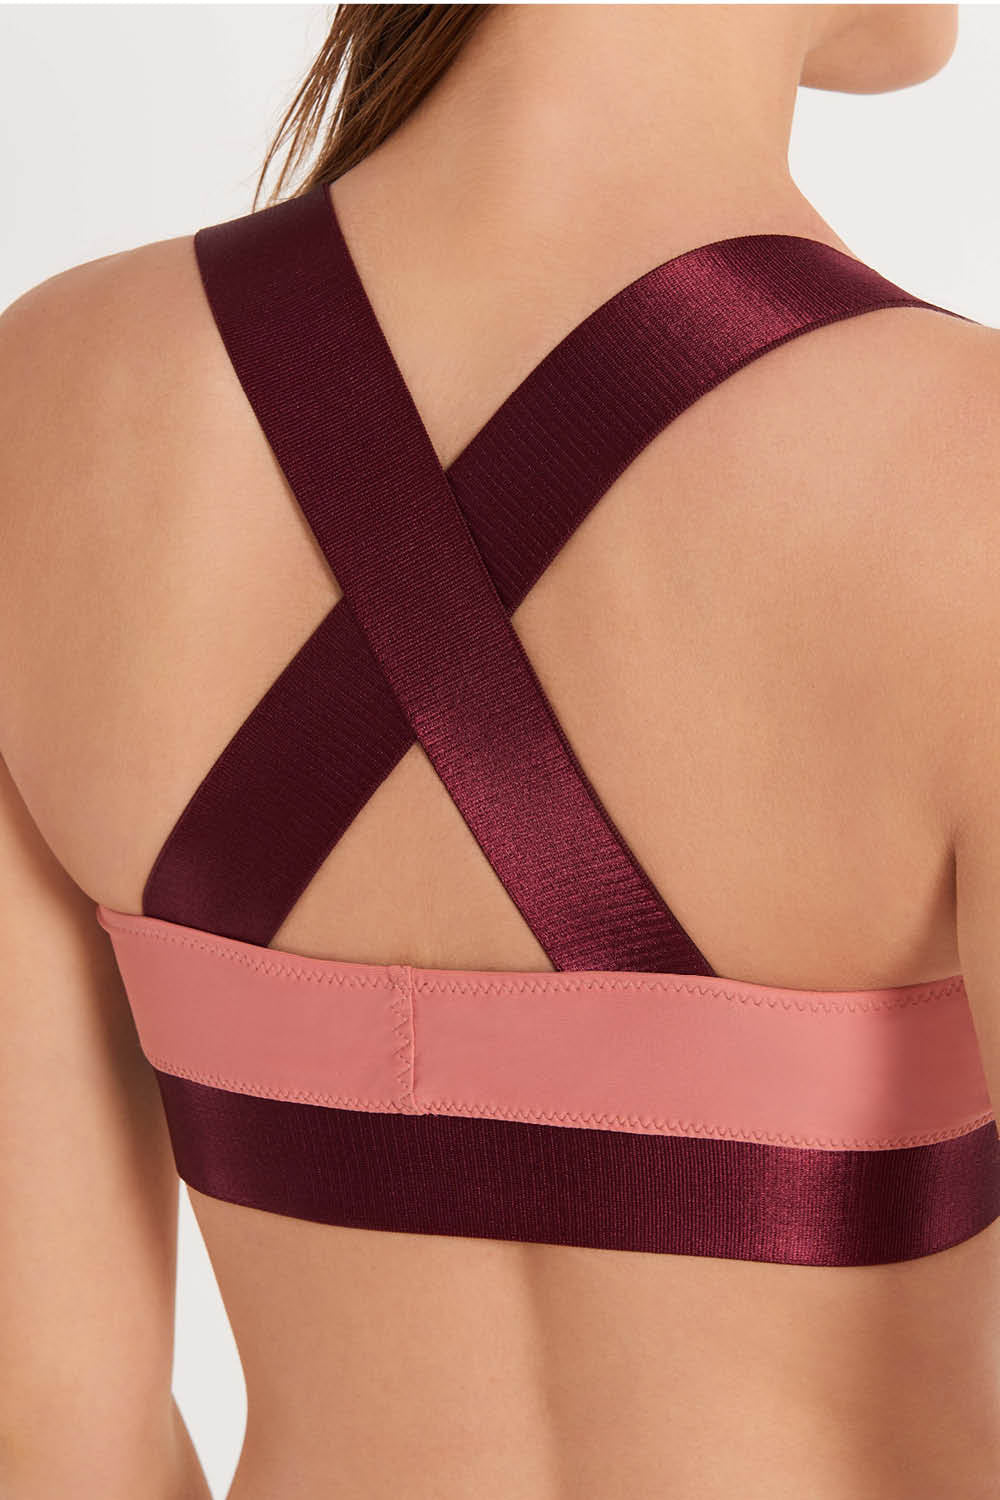 Reversible Sporty Top Burgundy/Peach